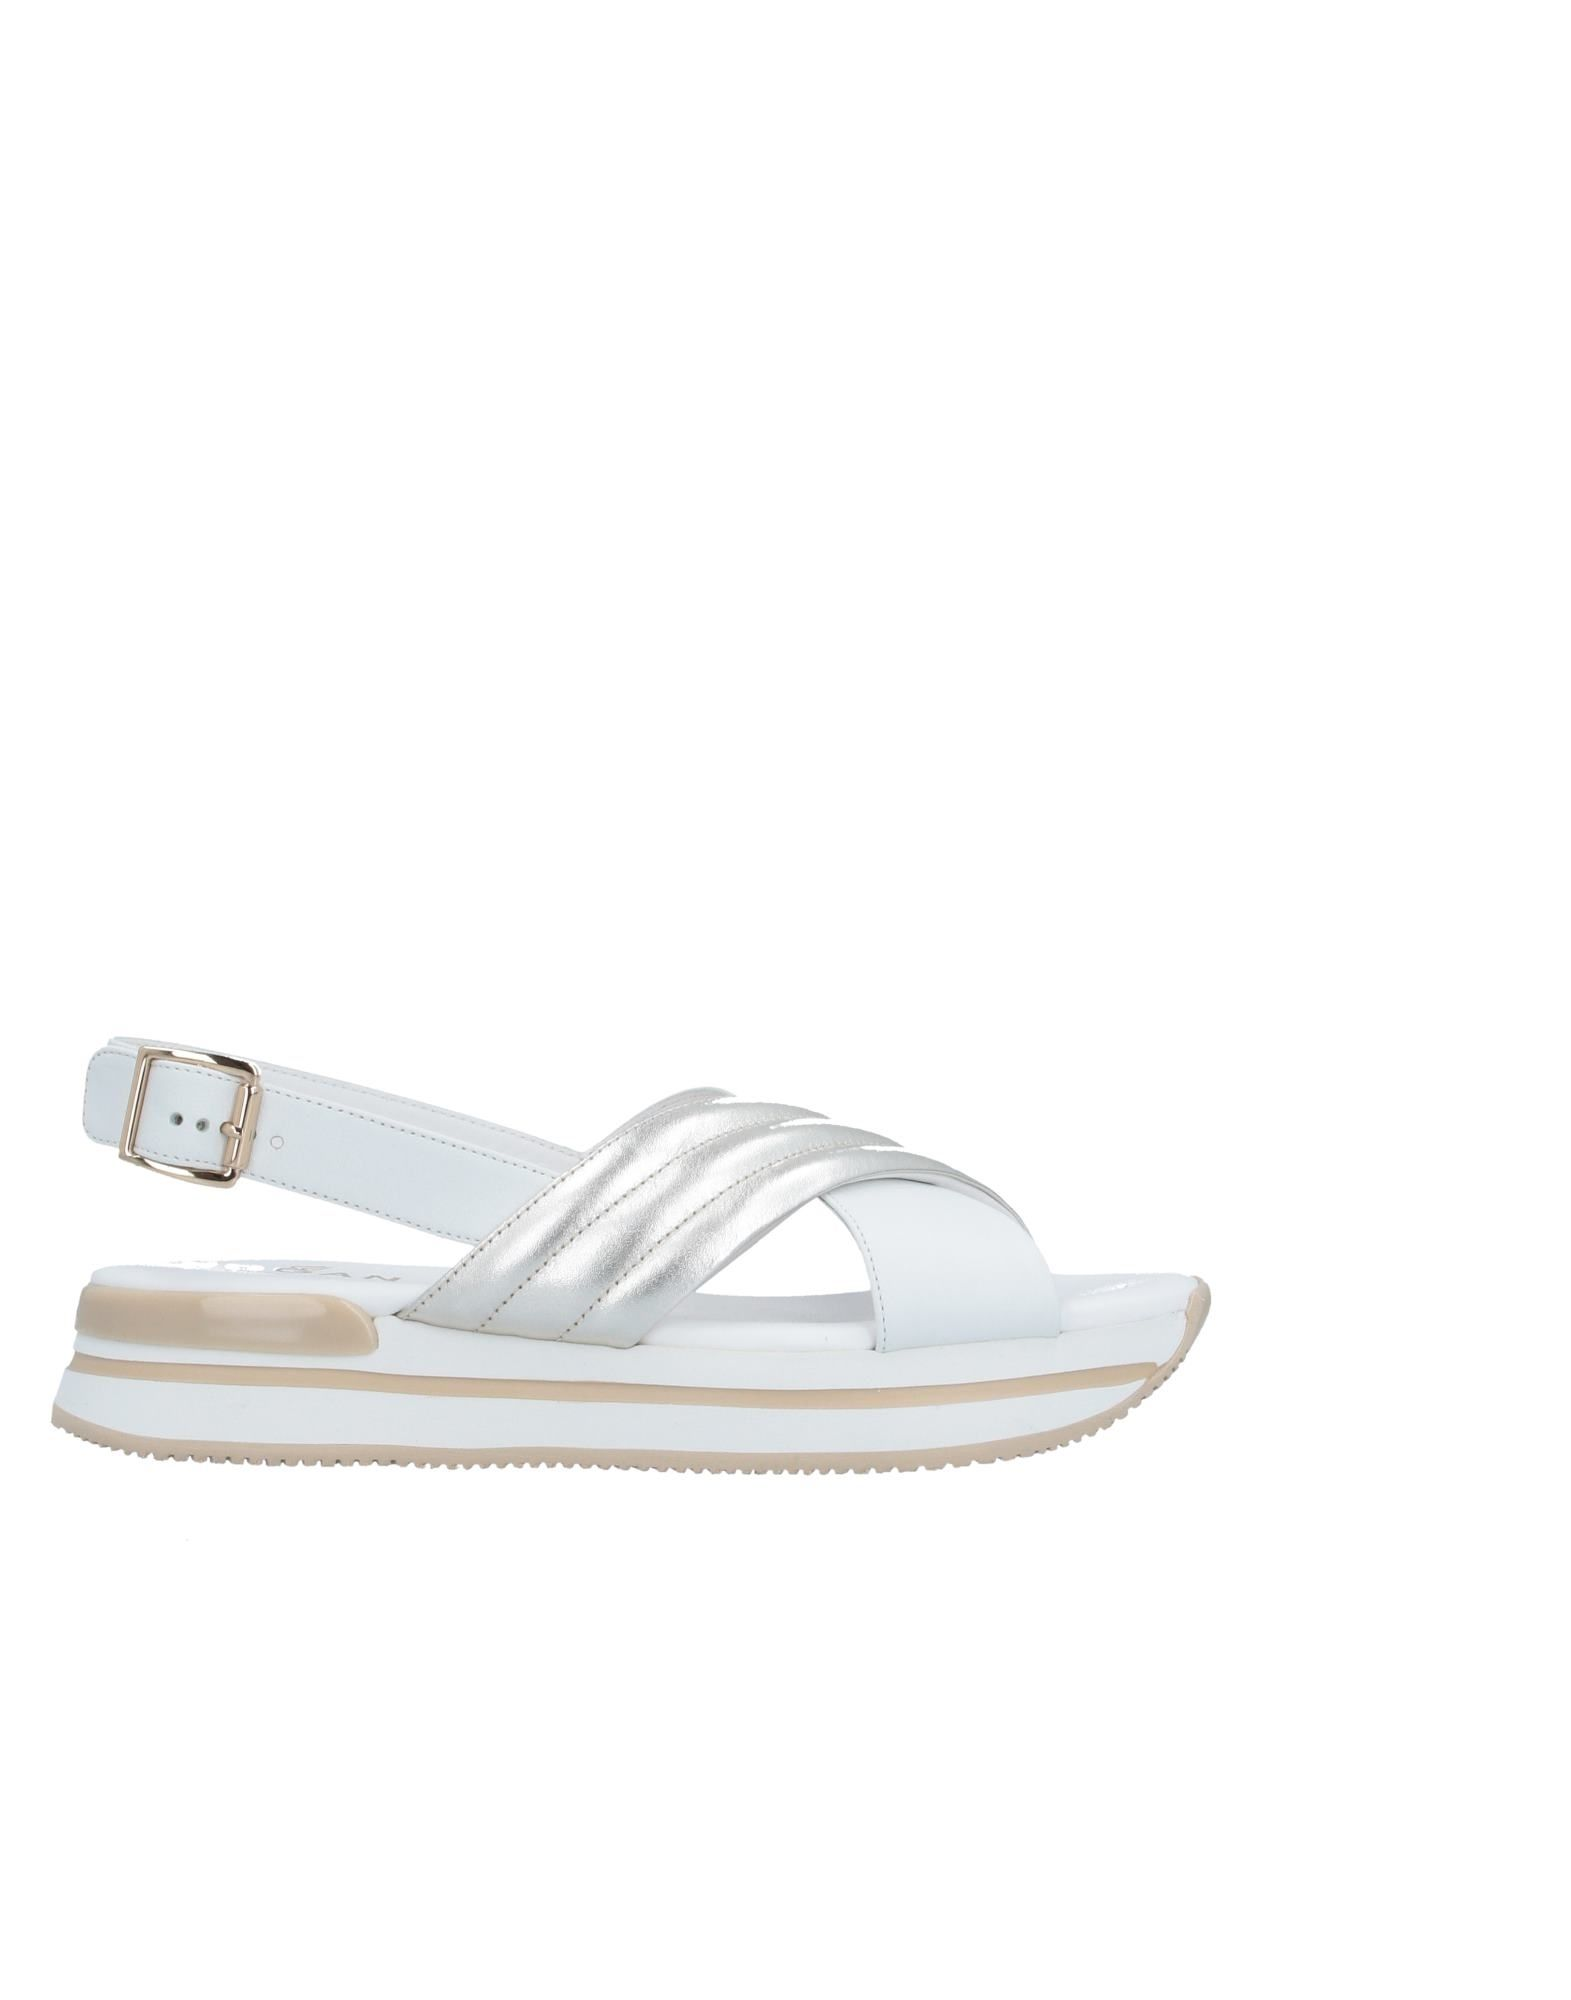 HOGAN Sandals. no appliqués, two-tone, laminated effect, buckle fastening, round toeline, flatform, leather lining, rubber sole, contains non-textile parts of animal origin. Soft Leather